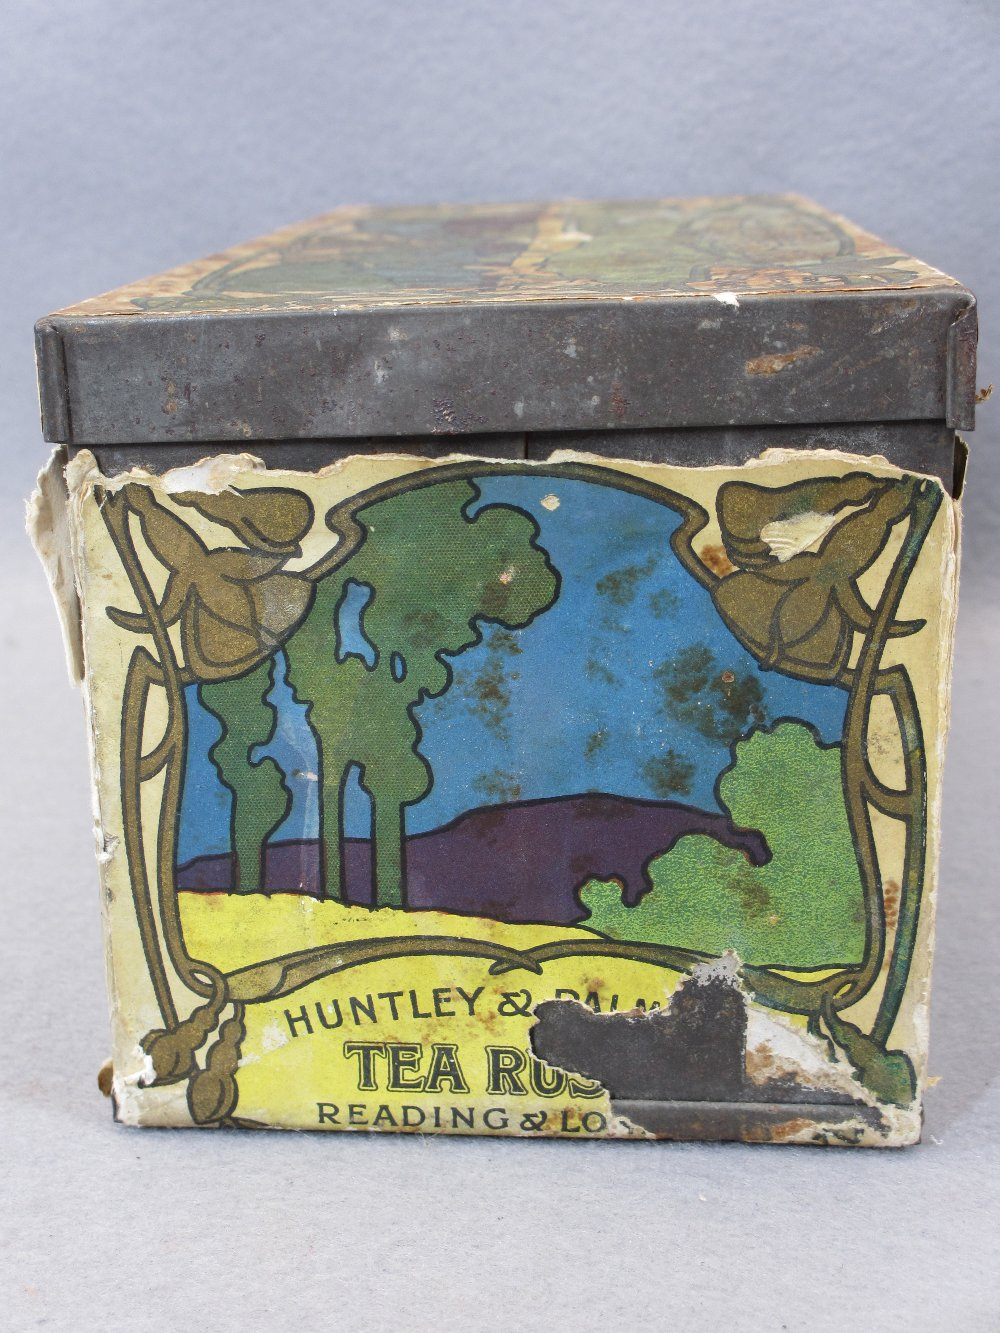 EP & OTHER CUTLERY - in a rare paper covered Huntley & Palmer's Tea Rusks tin, Art Nouveau style - Image 6 of 7